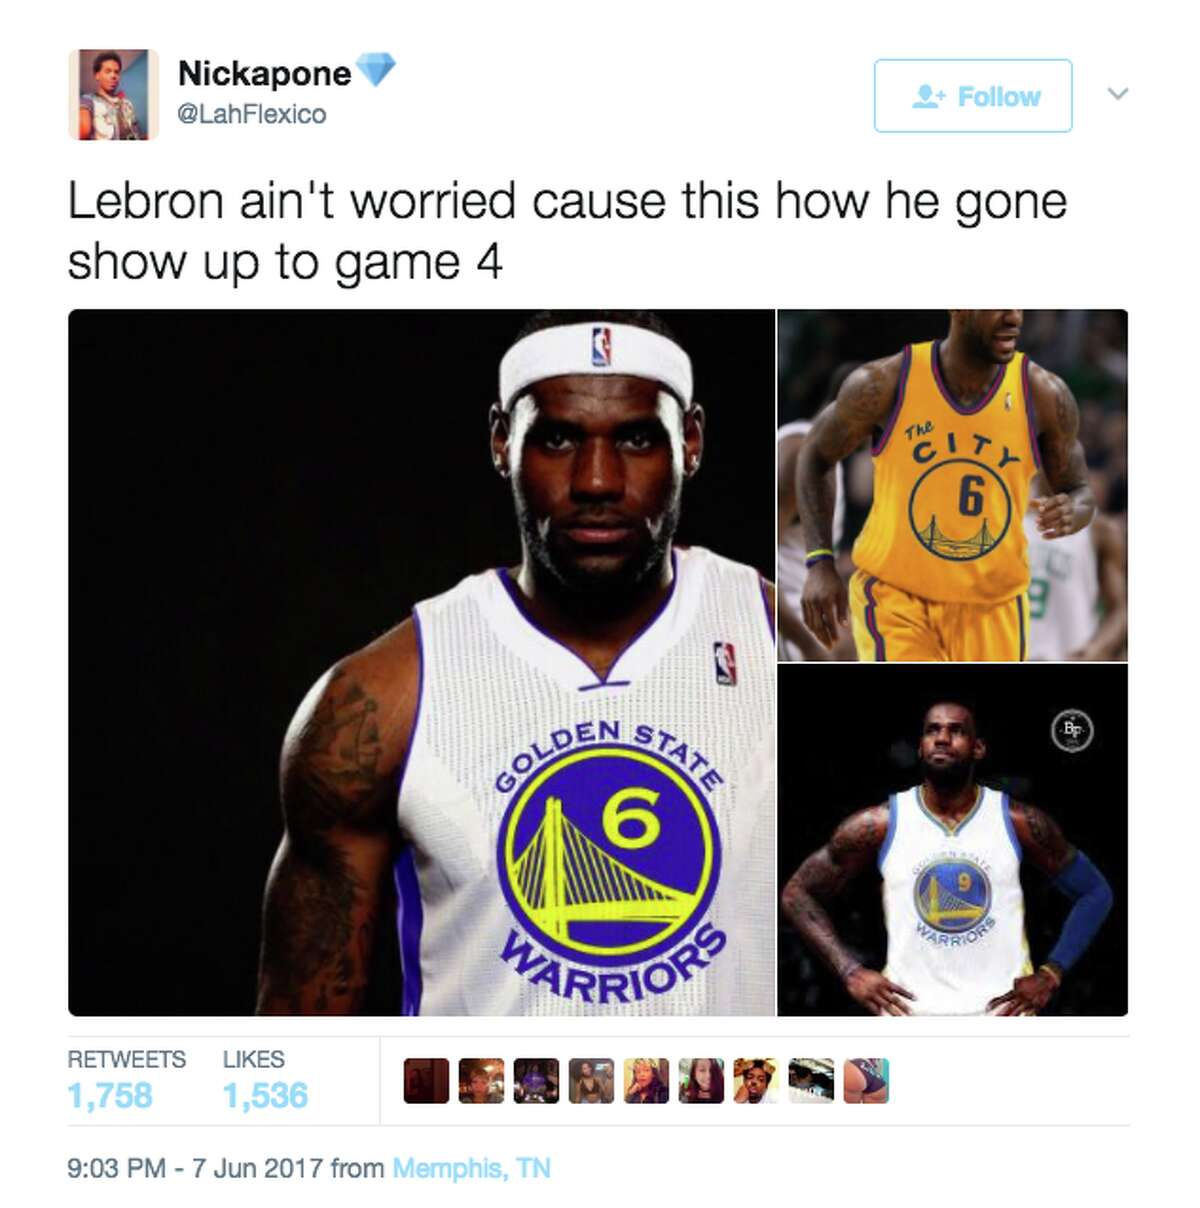 Twitter lit up with memes after the Warriors' stunning Game 3 victory over the Cavs in the NBA Finals.